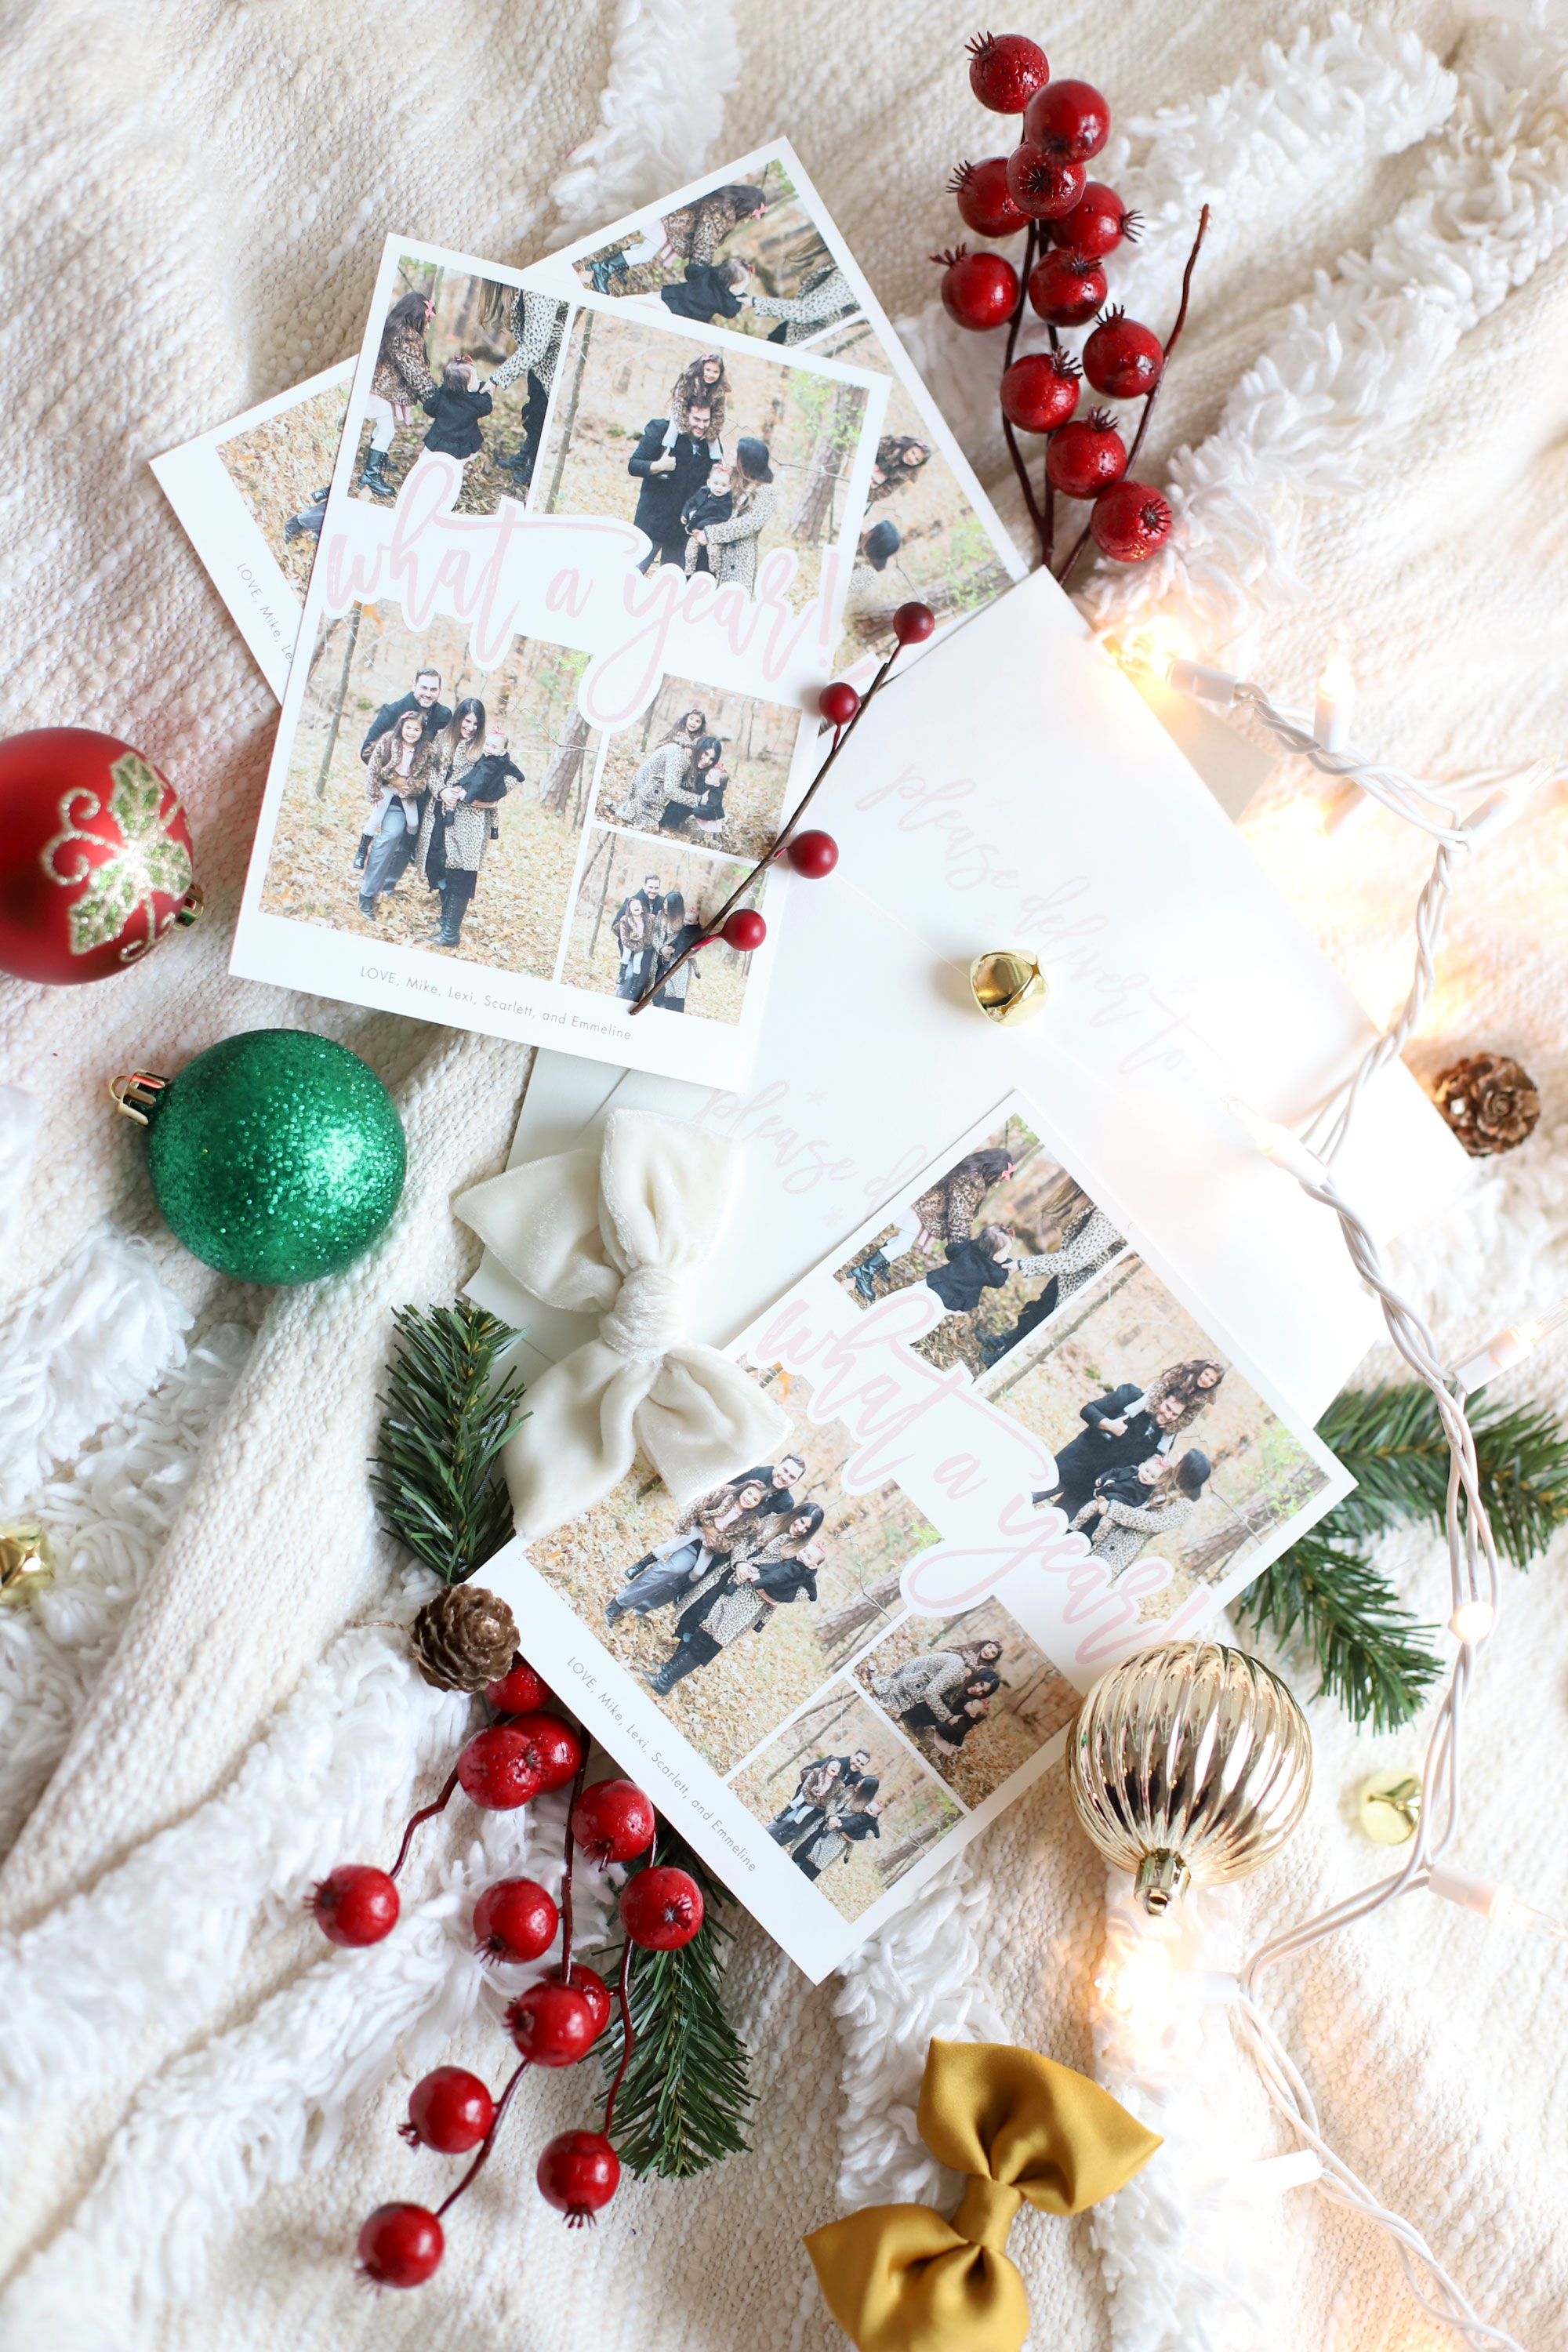 How To Create Your Family Christmas Card #holidaycards #familyholidaycards #familypictures | glitterinc.com | @glitterinc